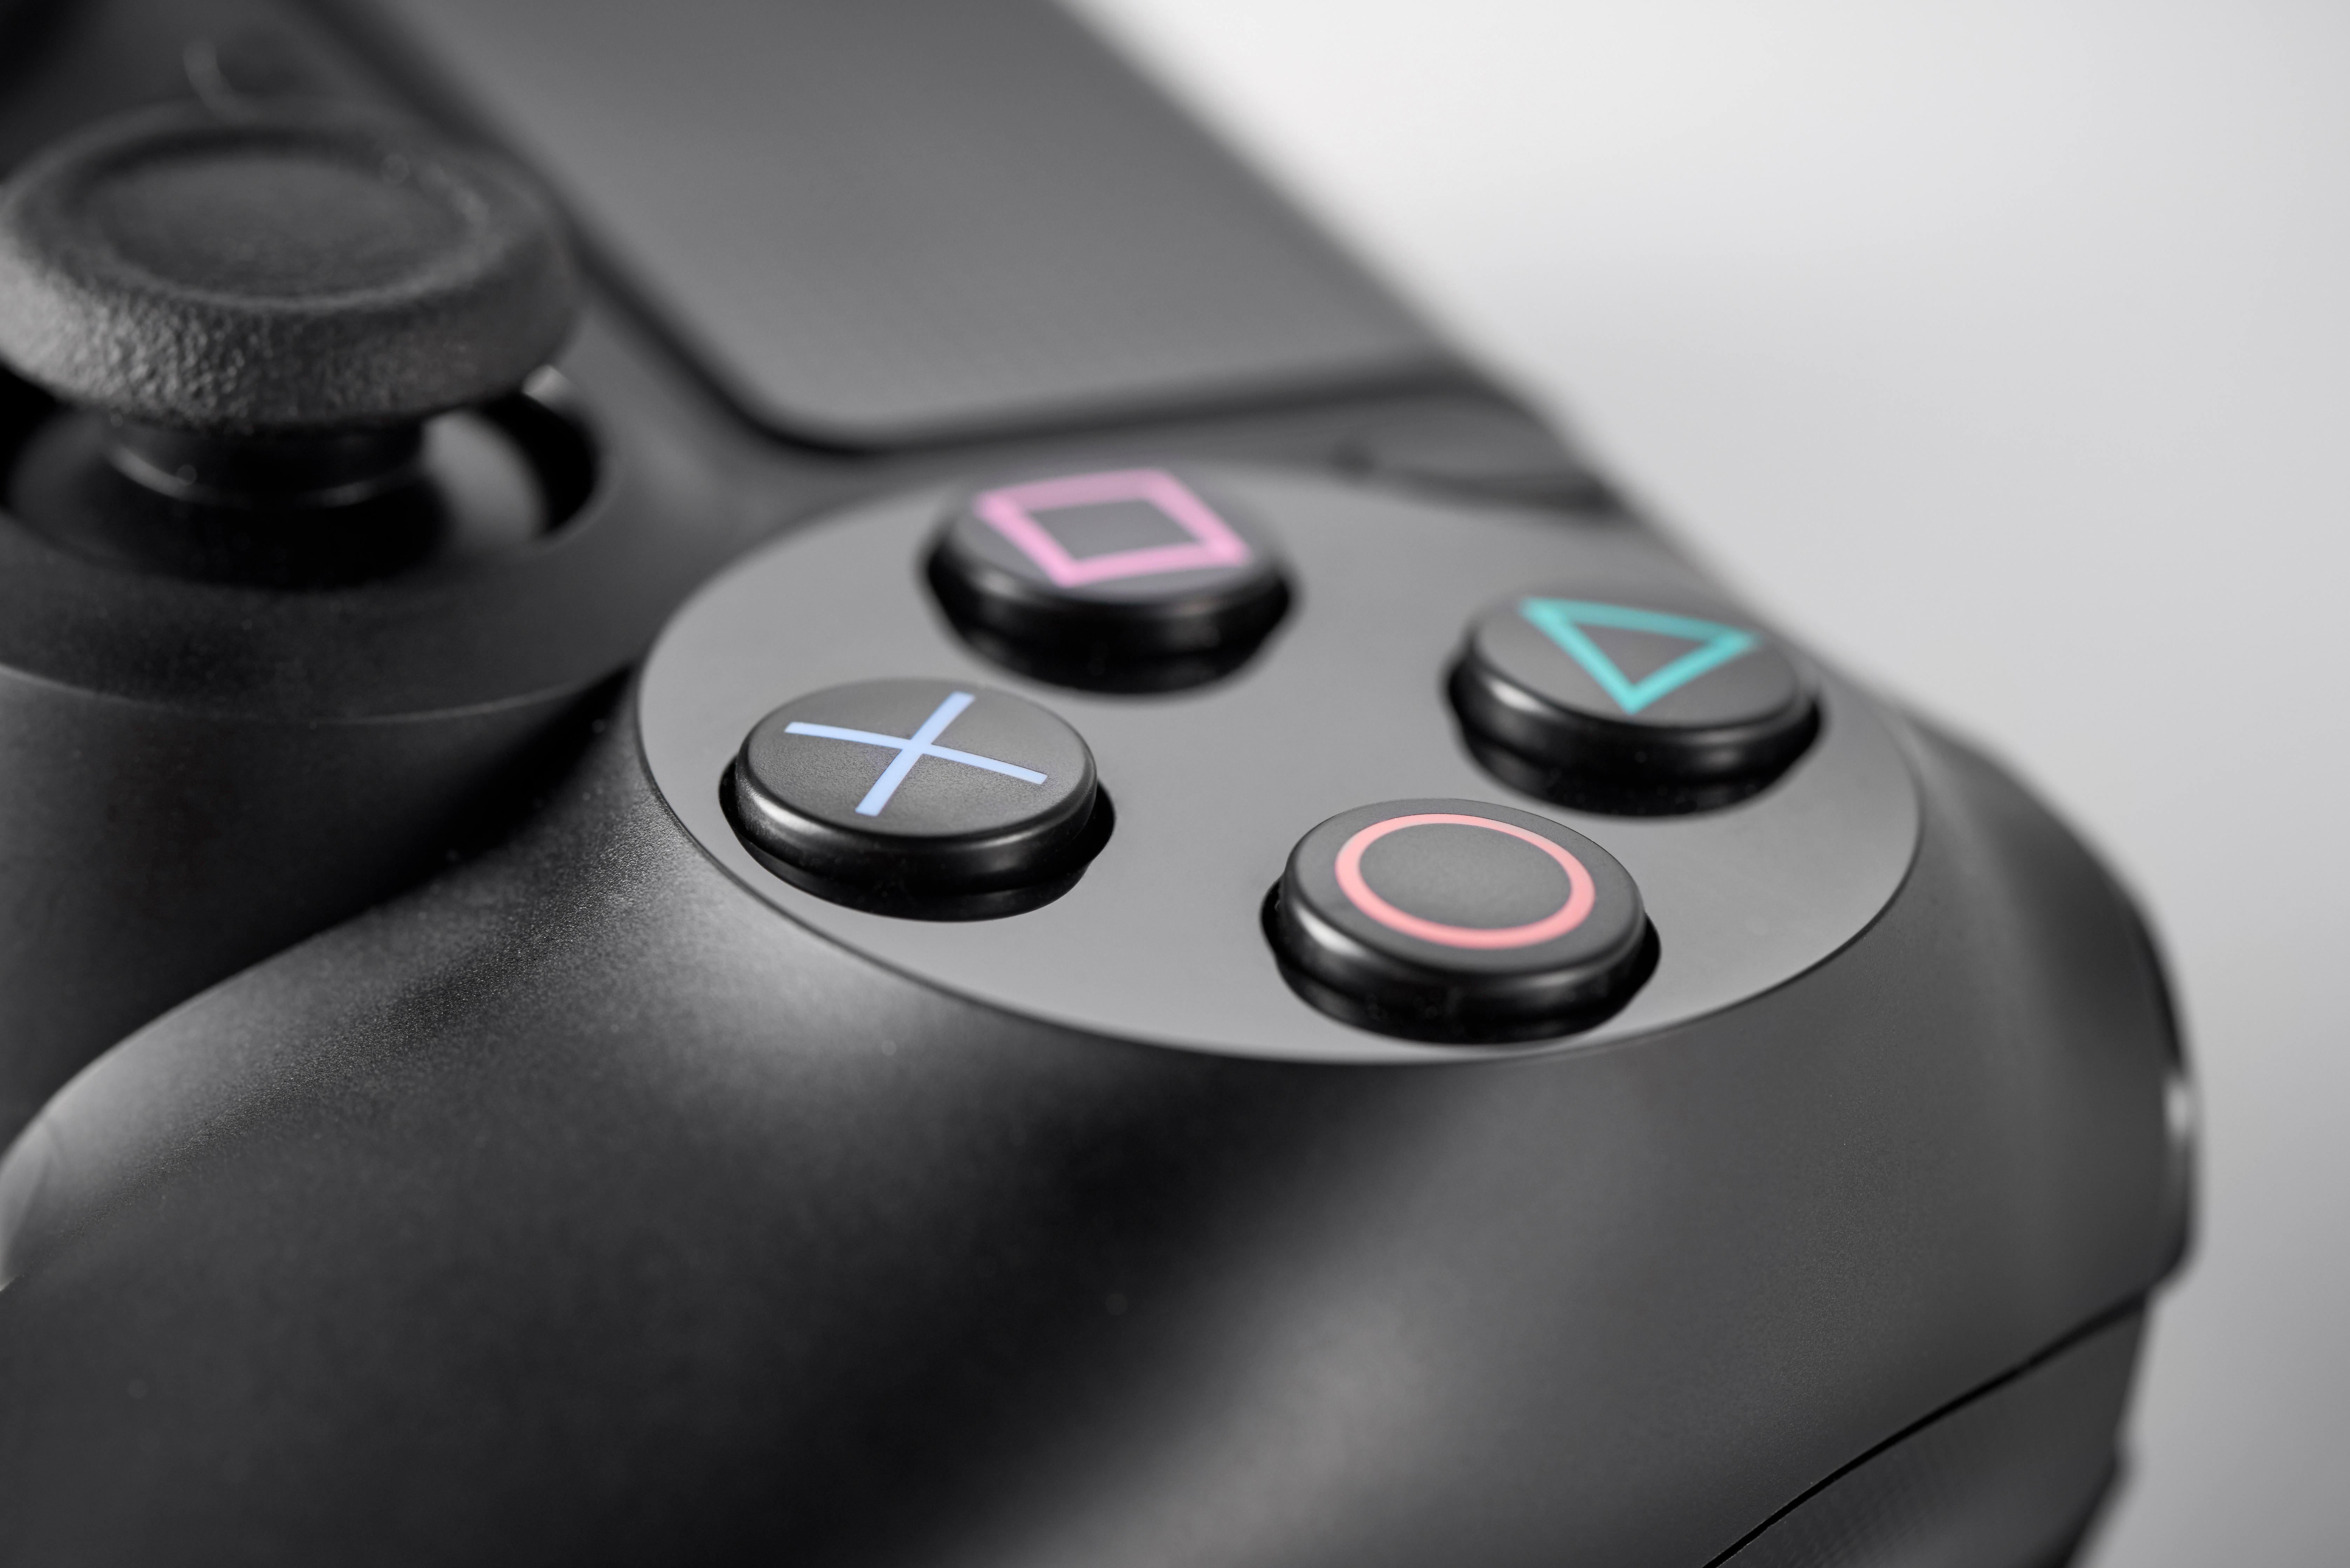 Detail of the buttons on a Sony DualShock 4 wireless controller, taken on January 22, 2016.